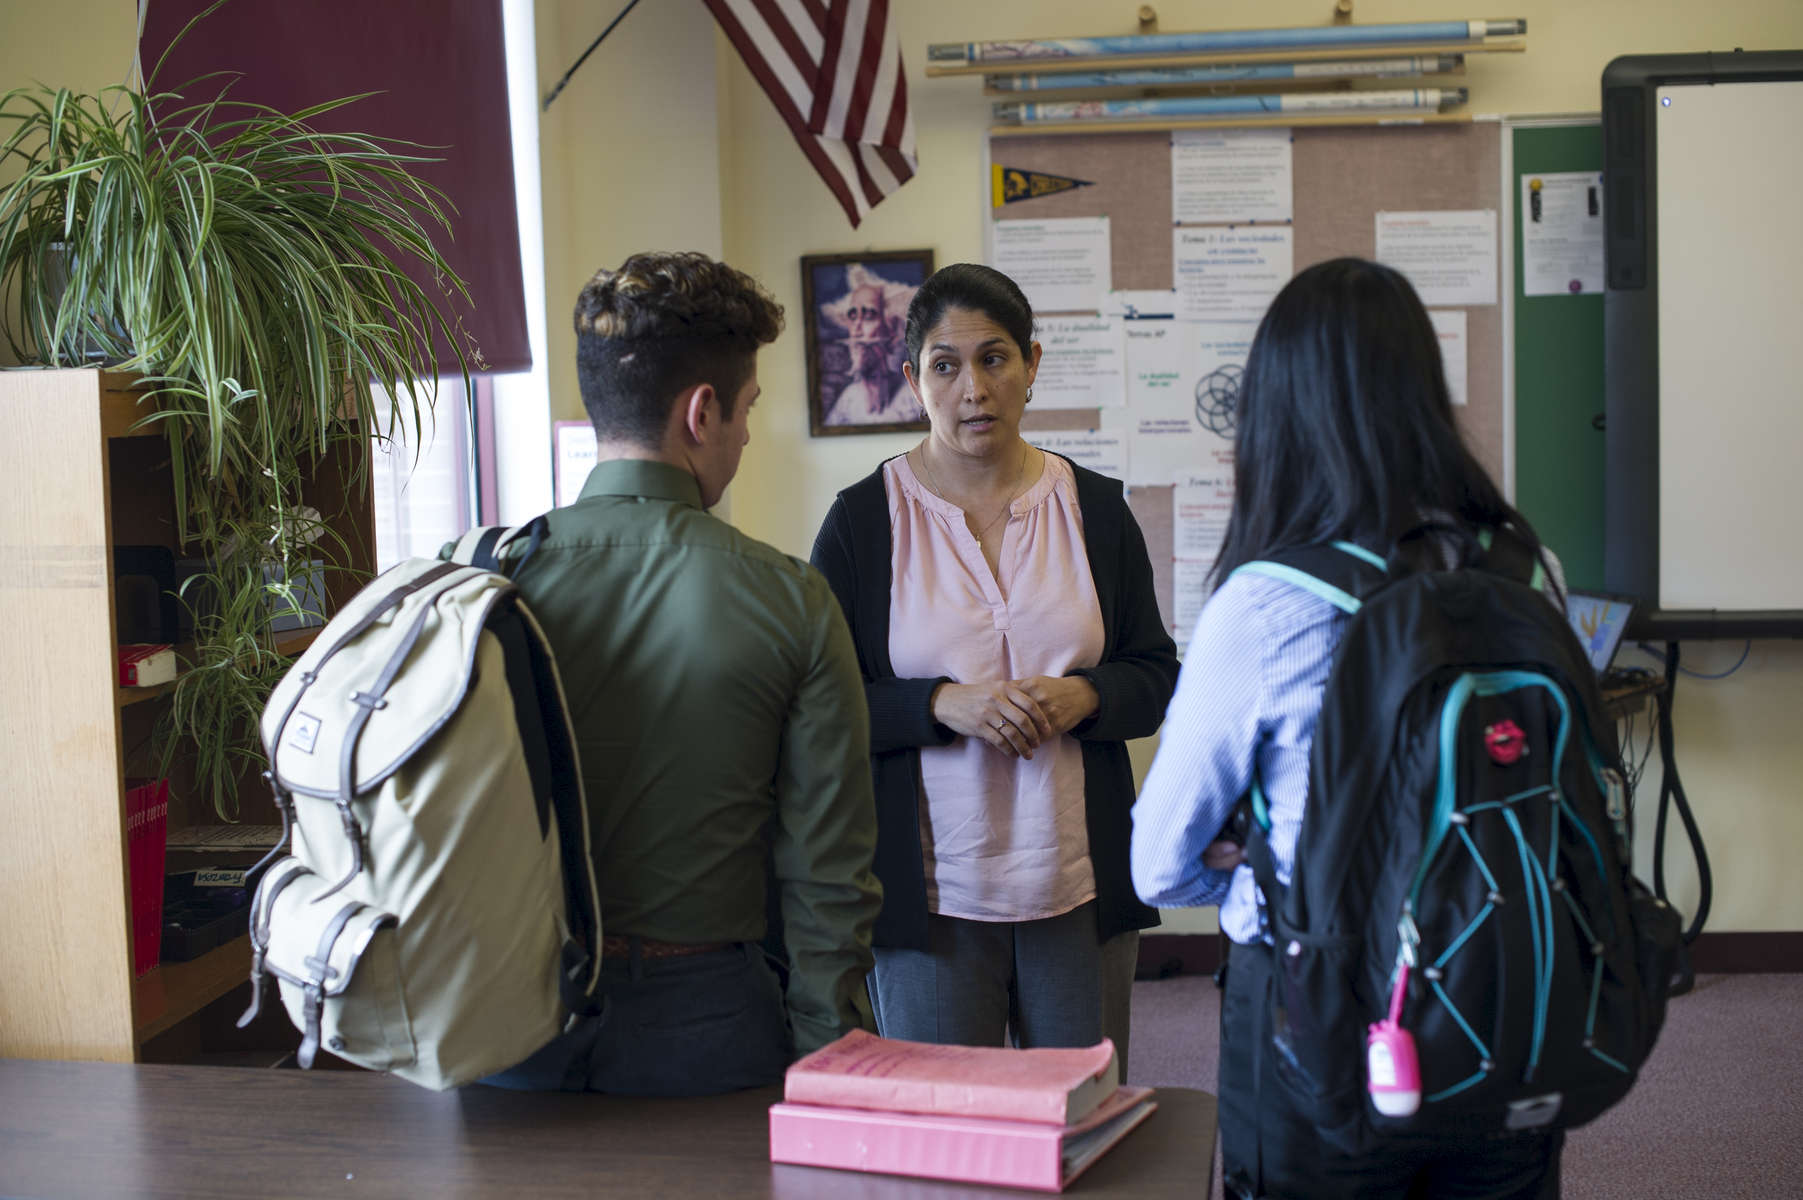 Part-time teacher Rosa Walke speaks to two student about laughing during a student presentation in an AP Spanish Class at Cristo Rey Jesuit High School, October 19, 2016.